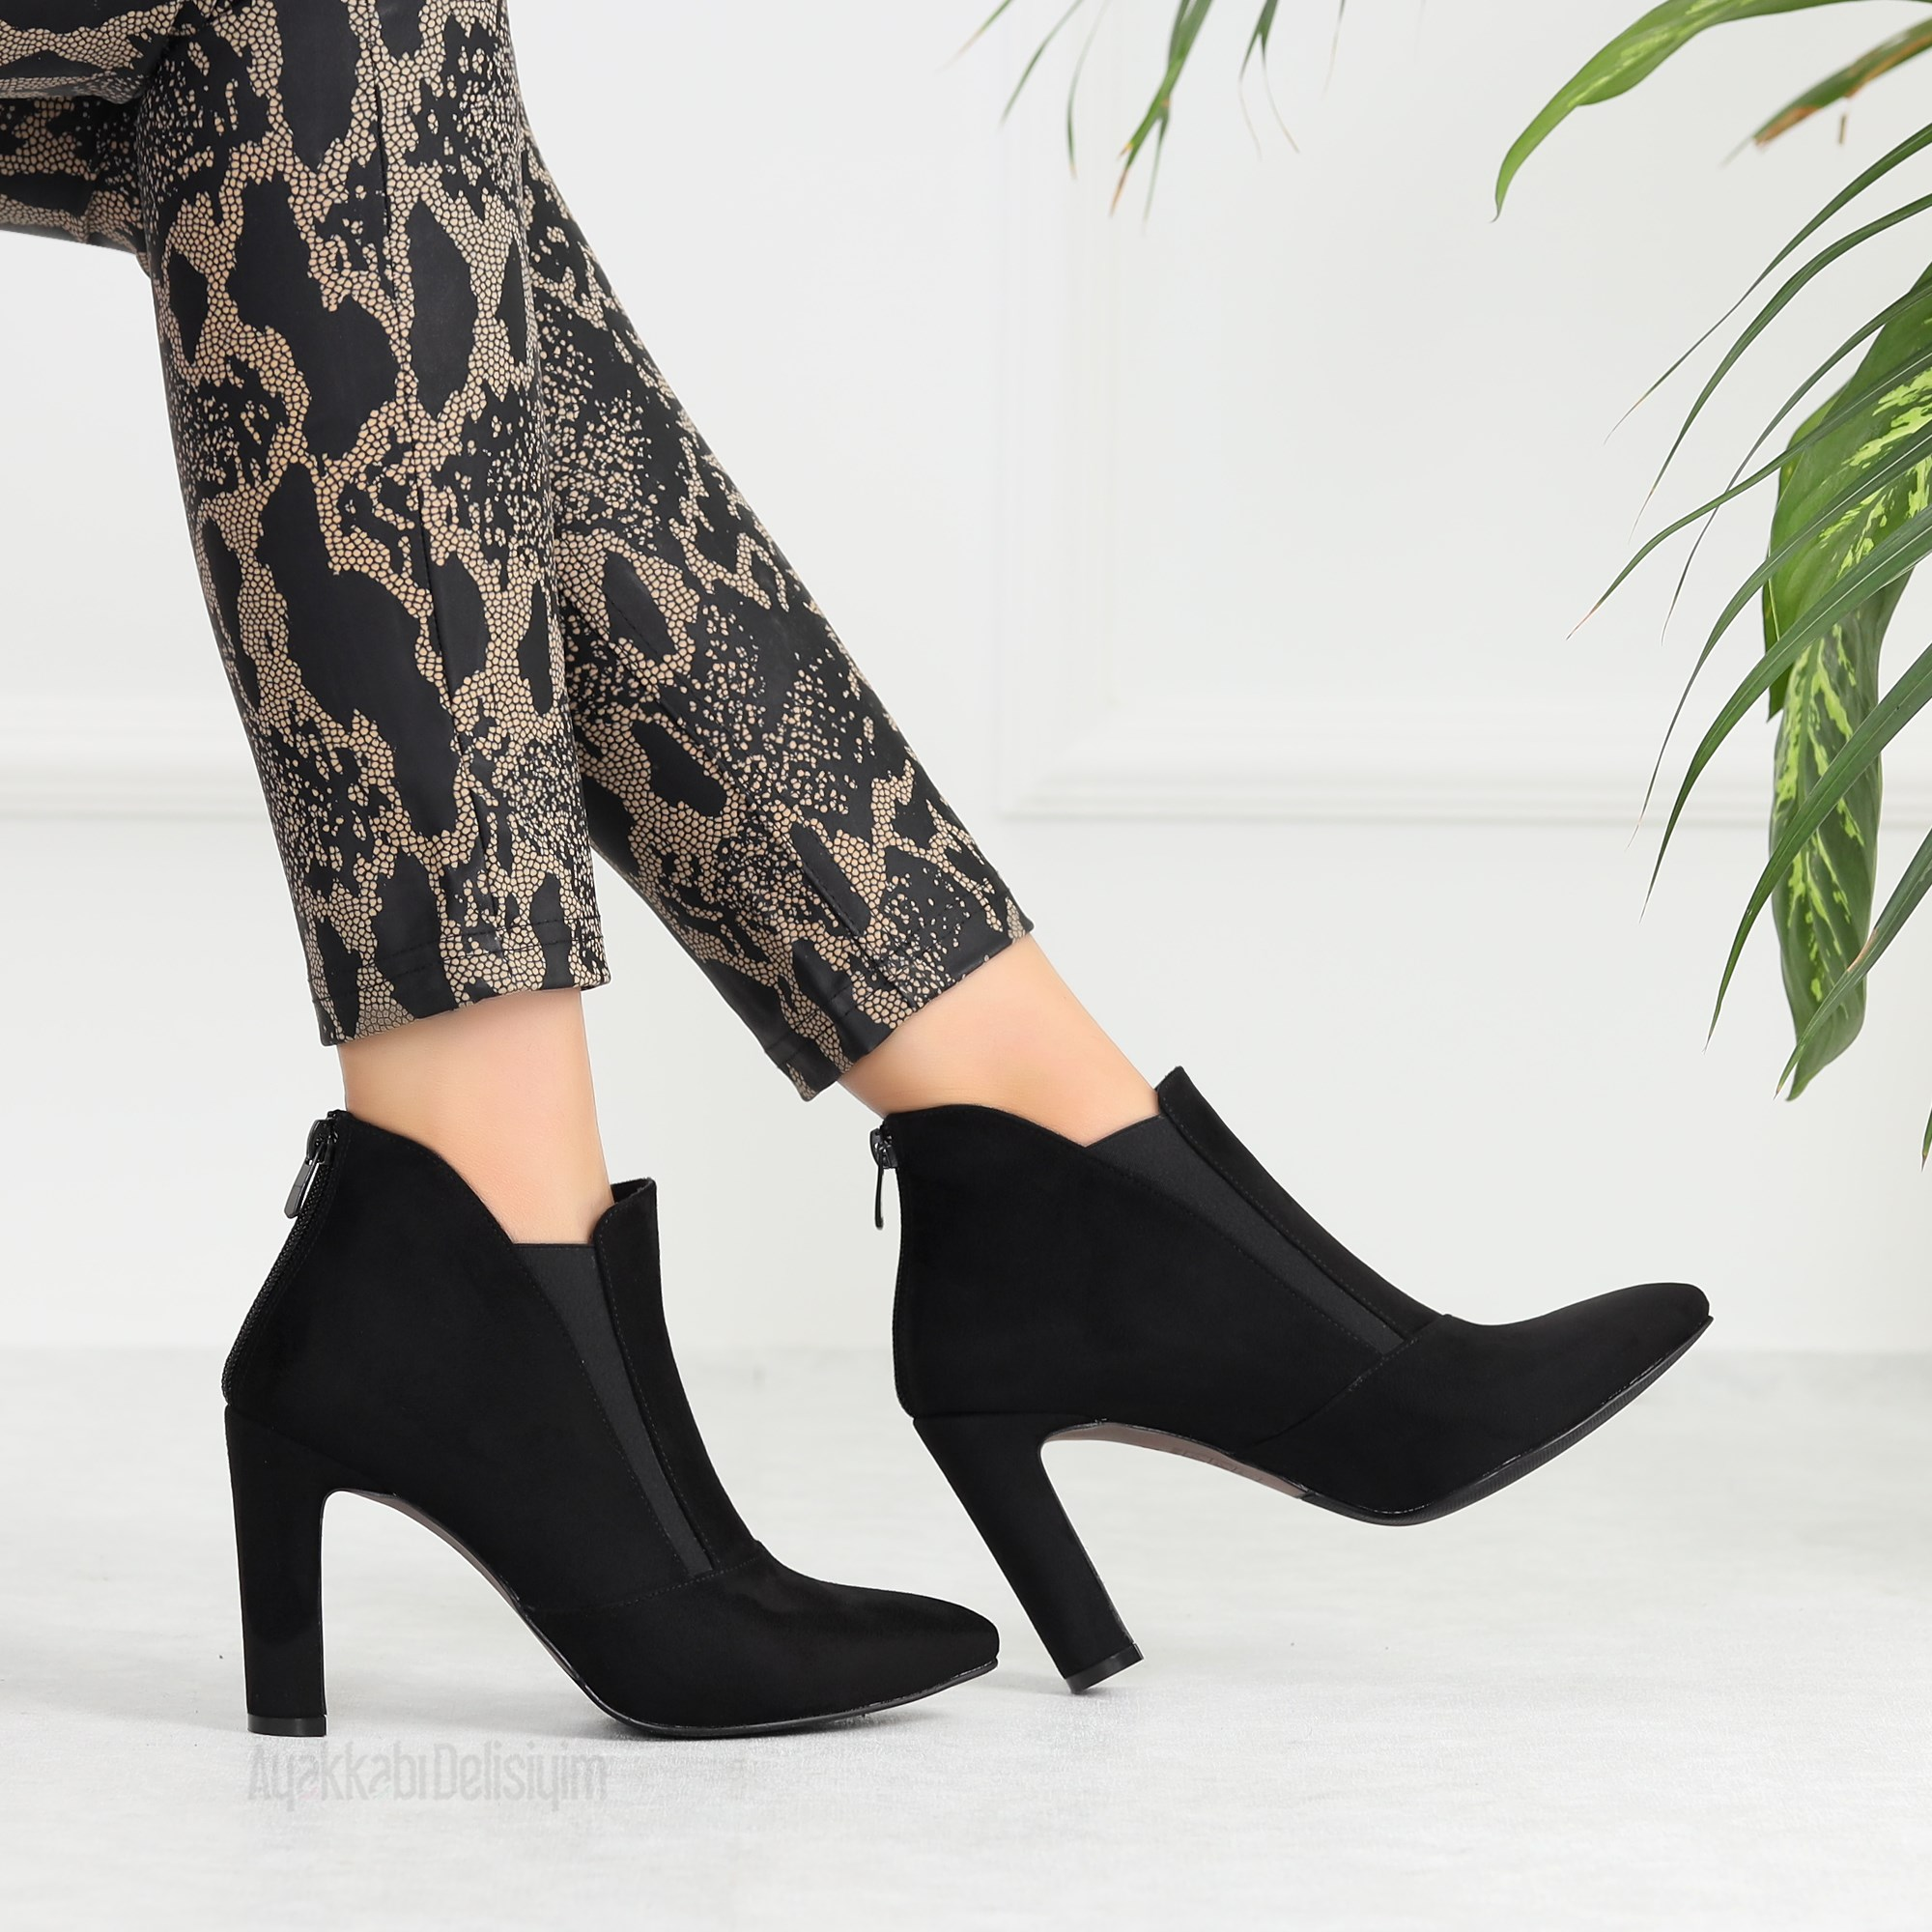 Evlasi Suede Black Pointed Toe Boots